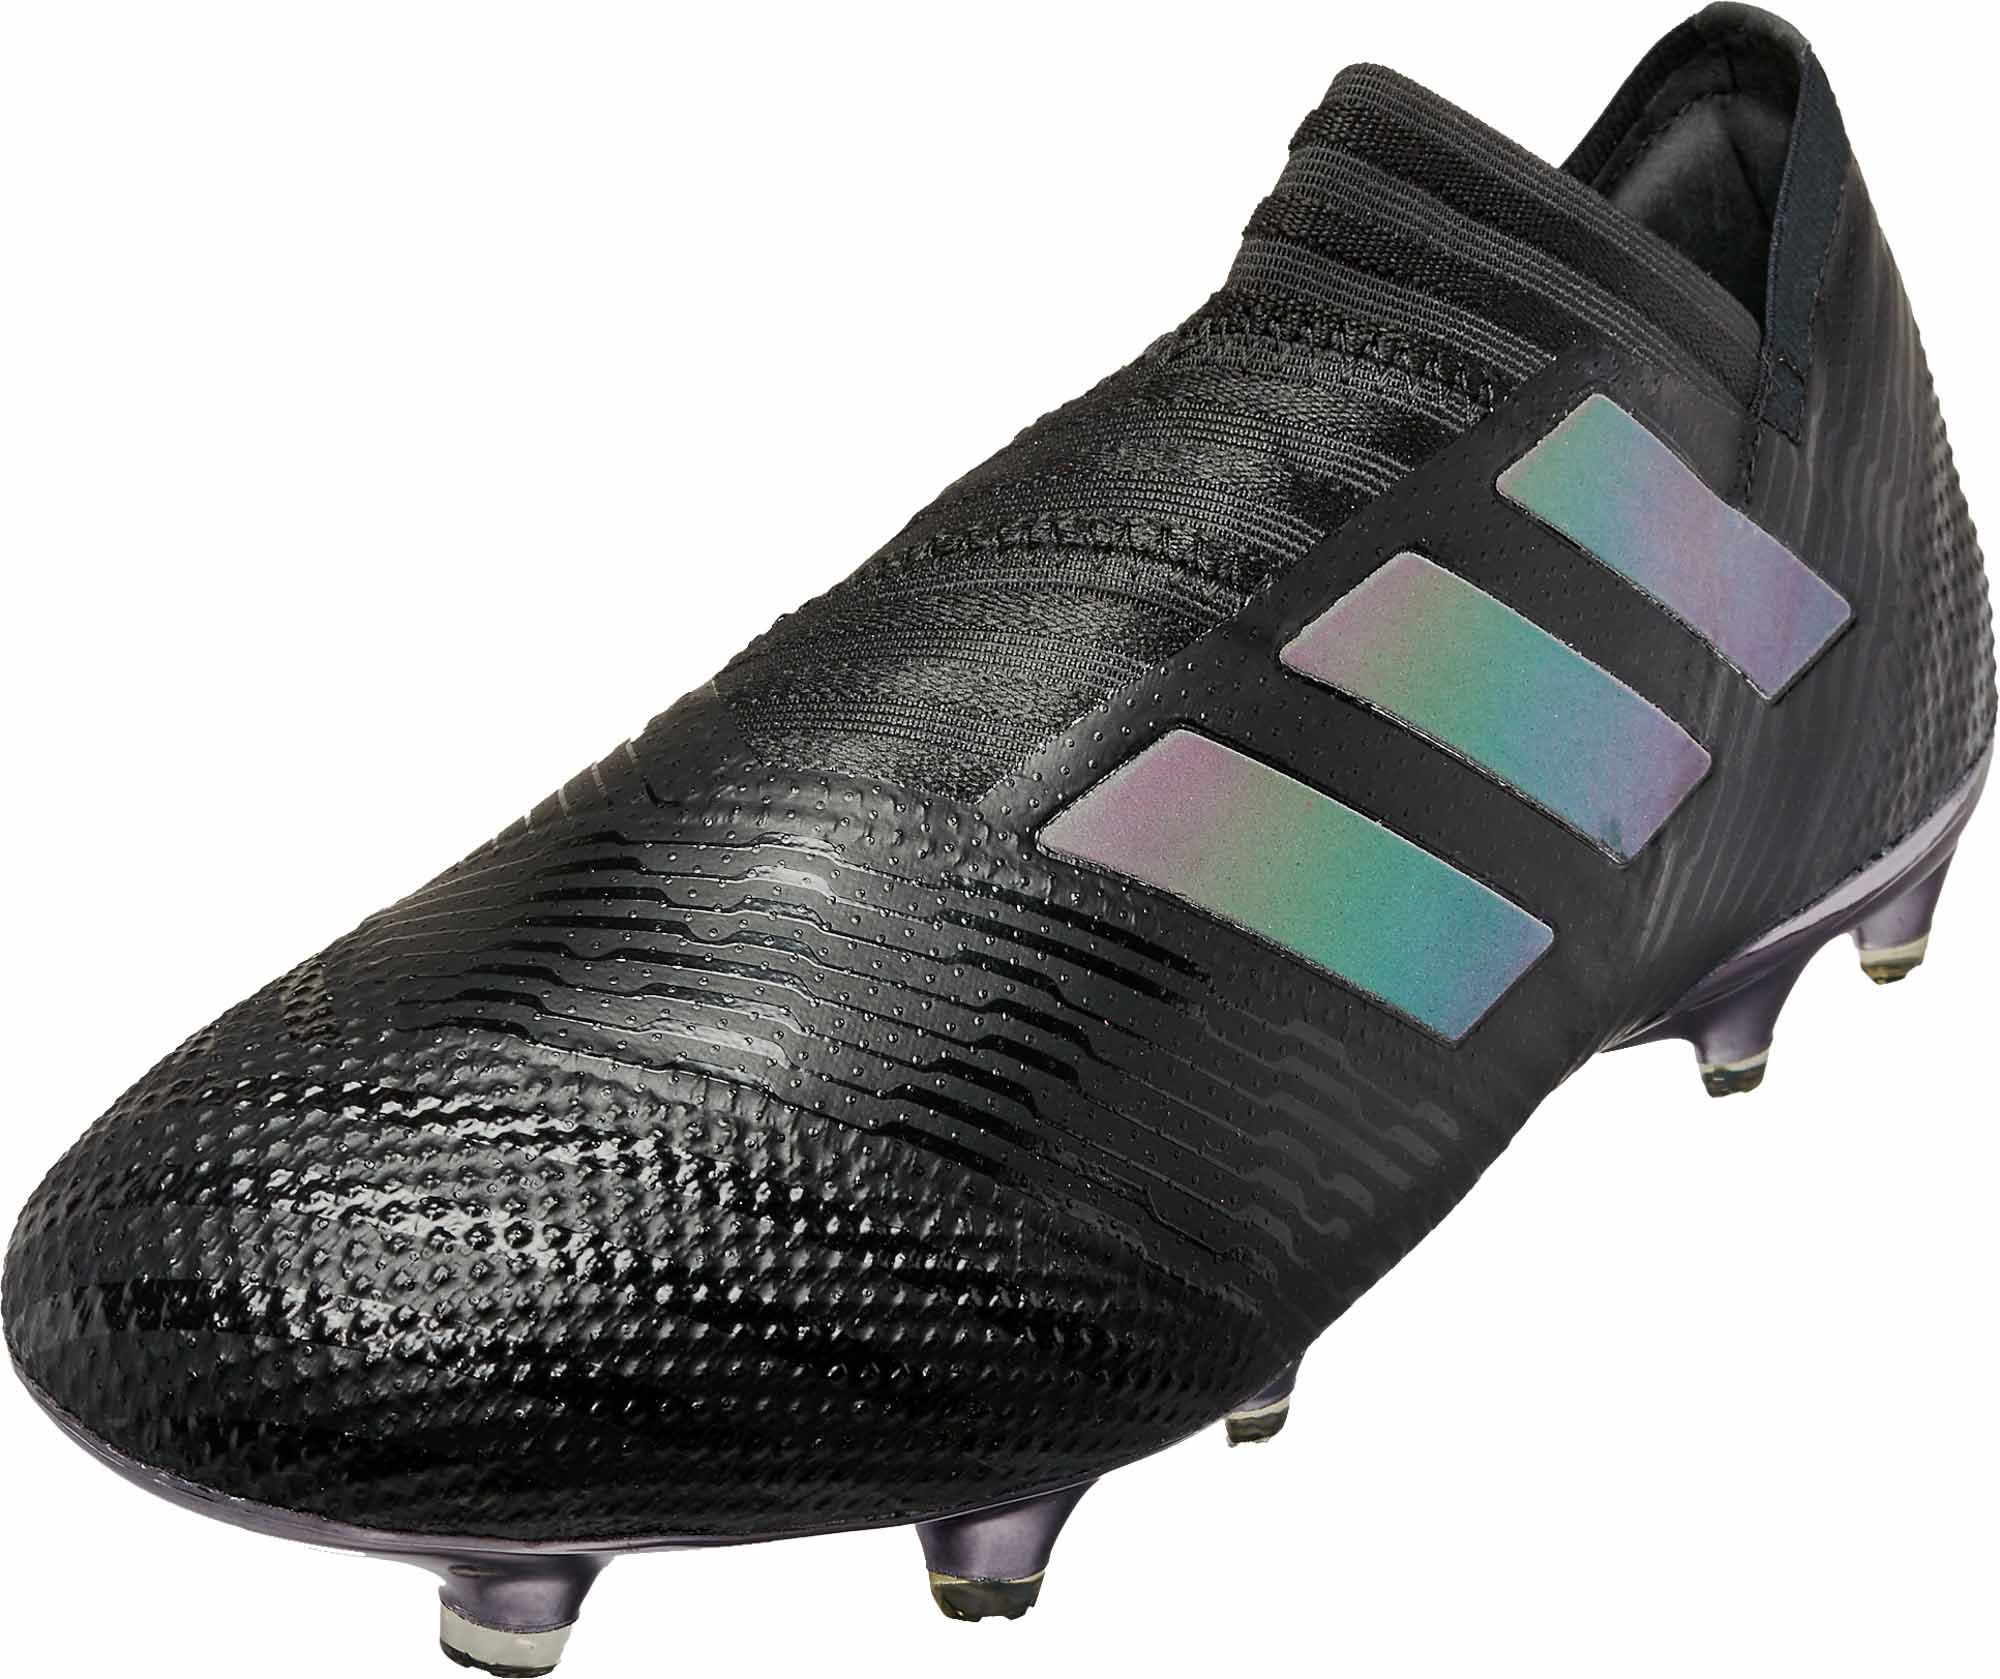 adidas Nemeziz 17 FG – BlackHi-Res Green